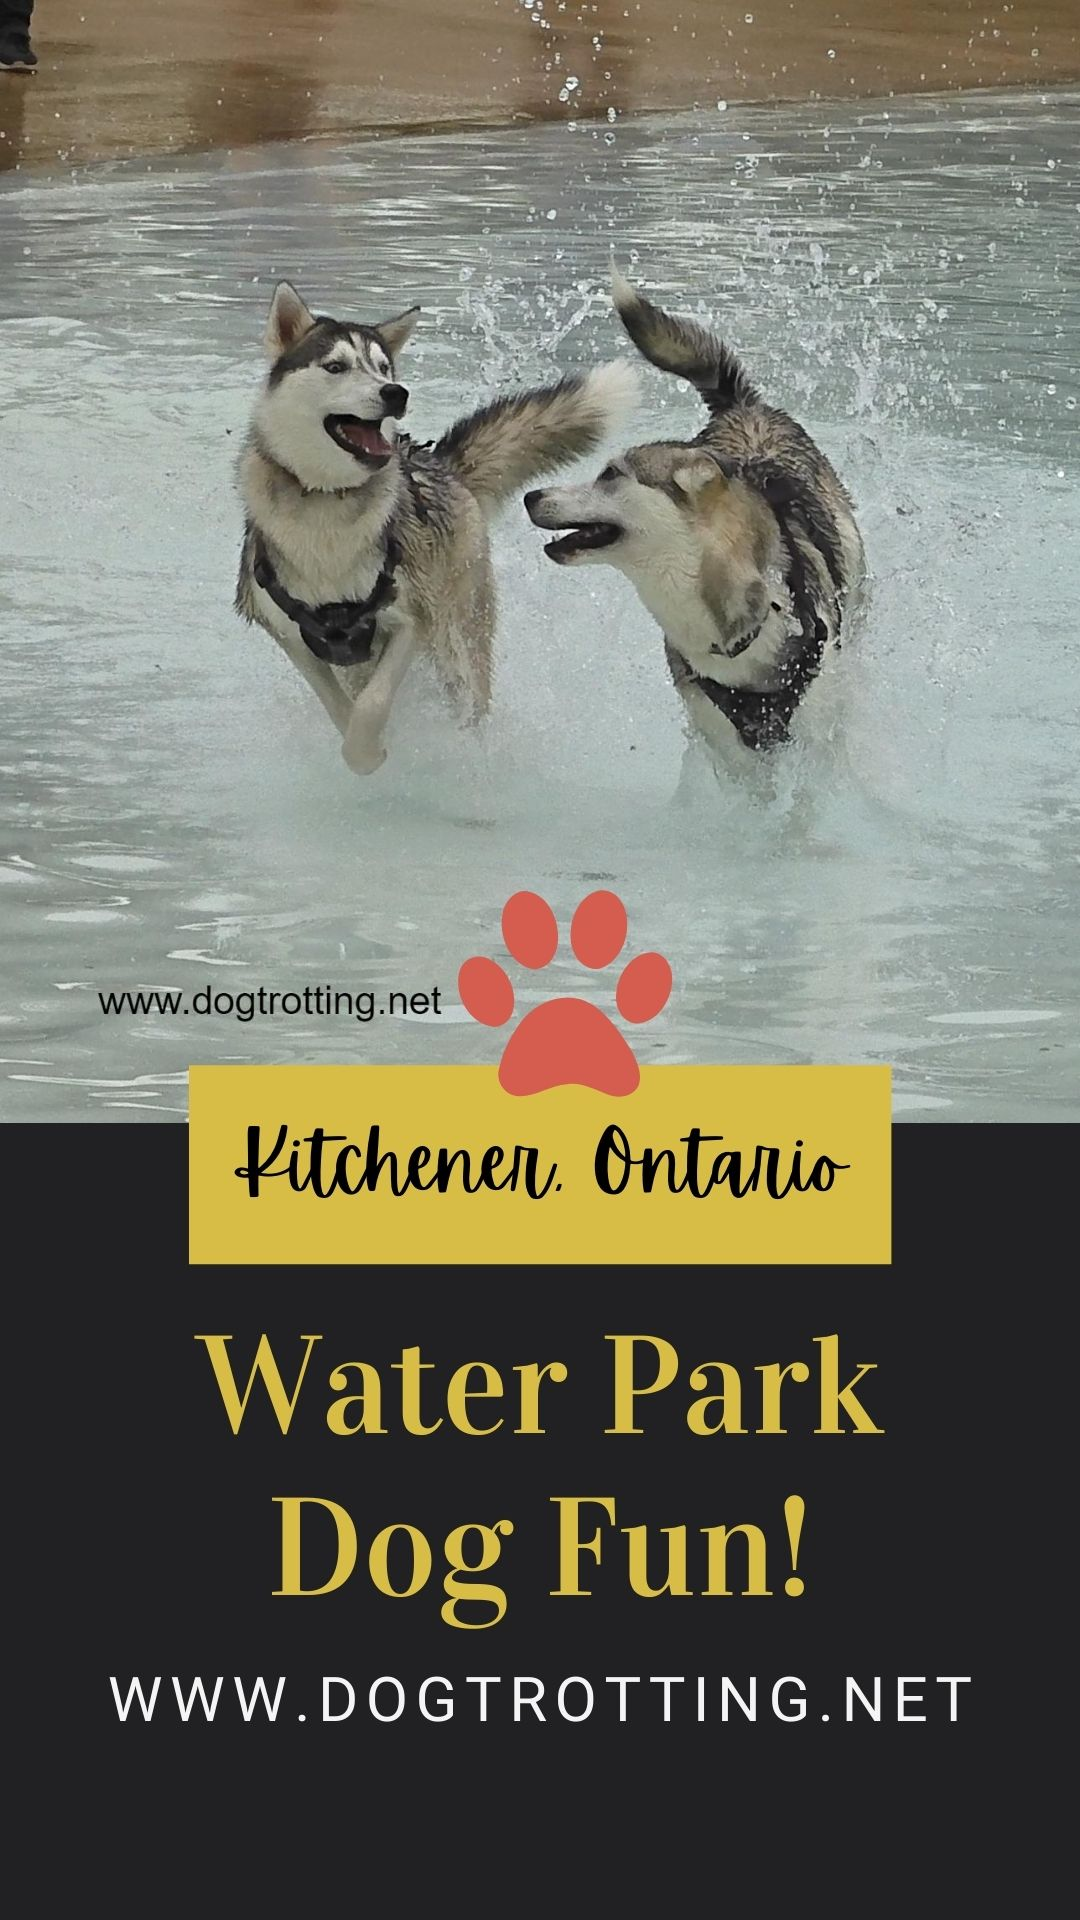 Take your dog to the water park … once a year. (Fundraising fun for water-loving pups)